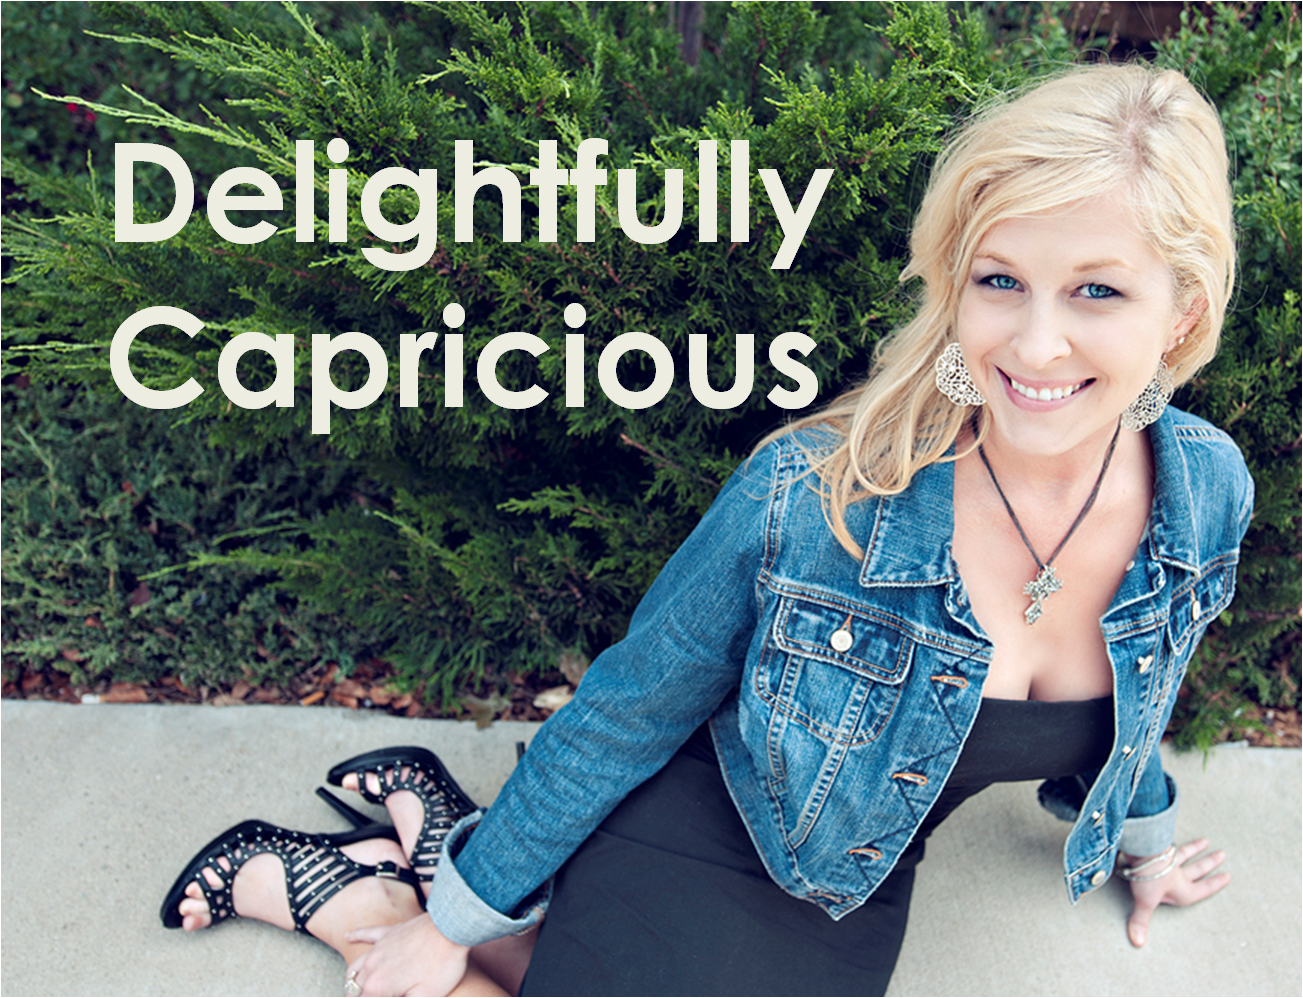 Delightfully Capricious